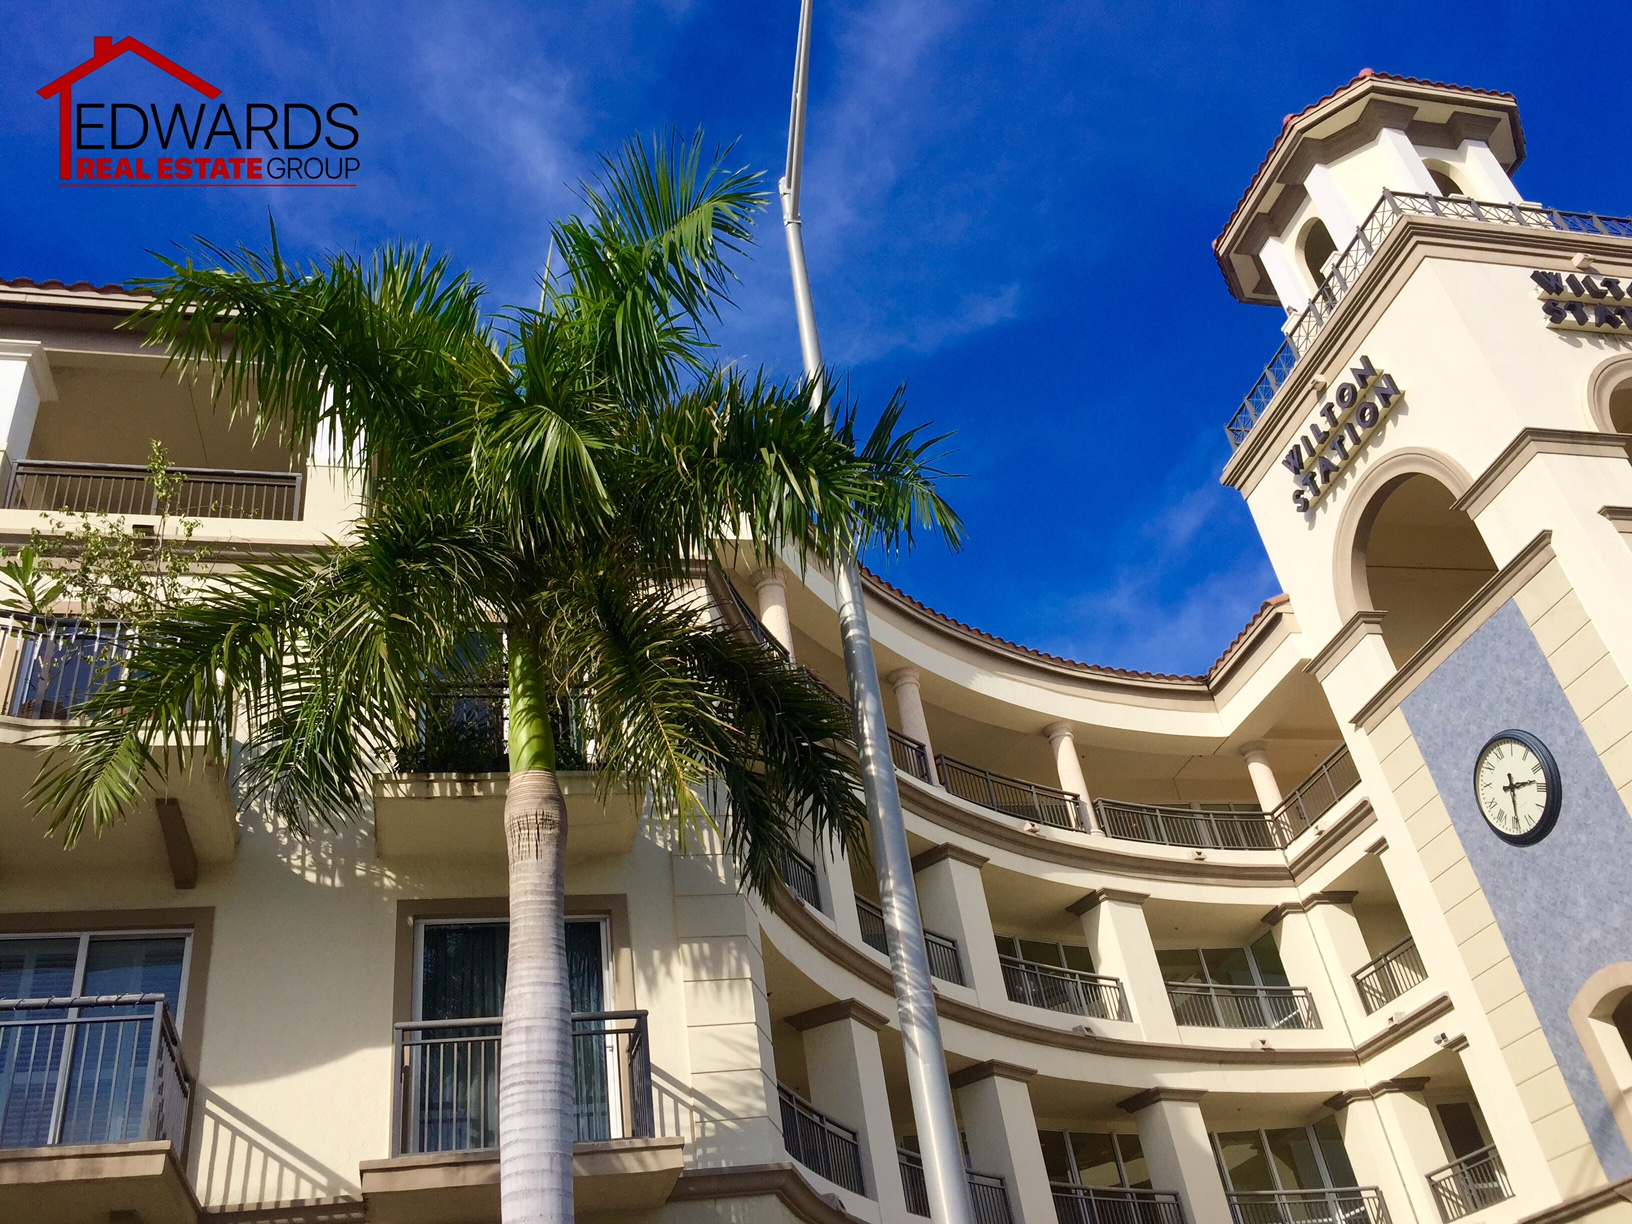 Wilton Station - Wilton Manors, FL - The Edwards Real Estate Group